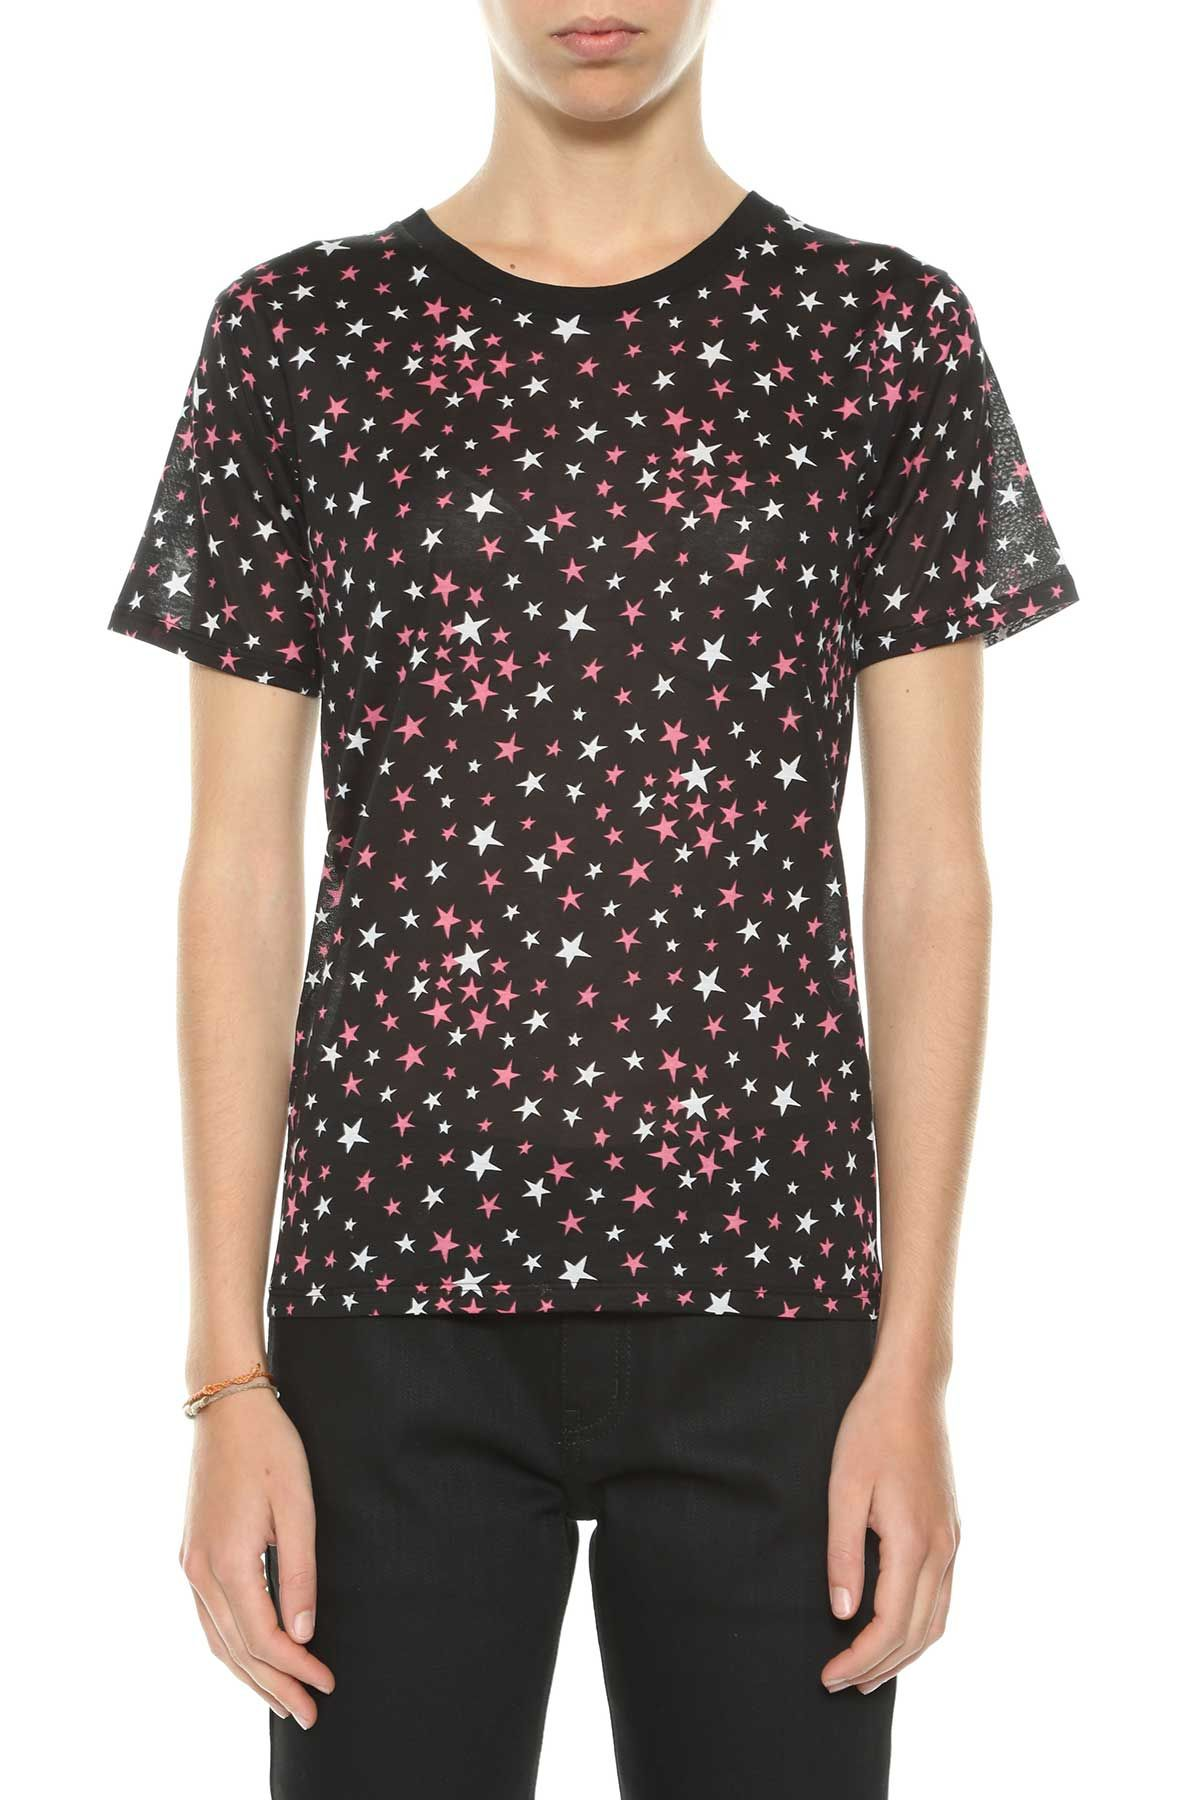 Saint Laurent T-shirt With Printed Stars